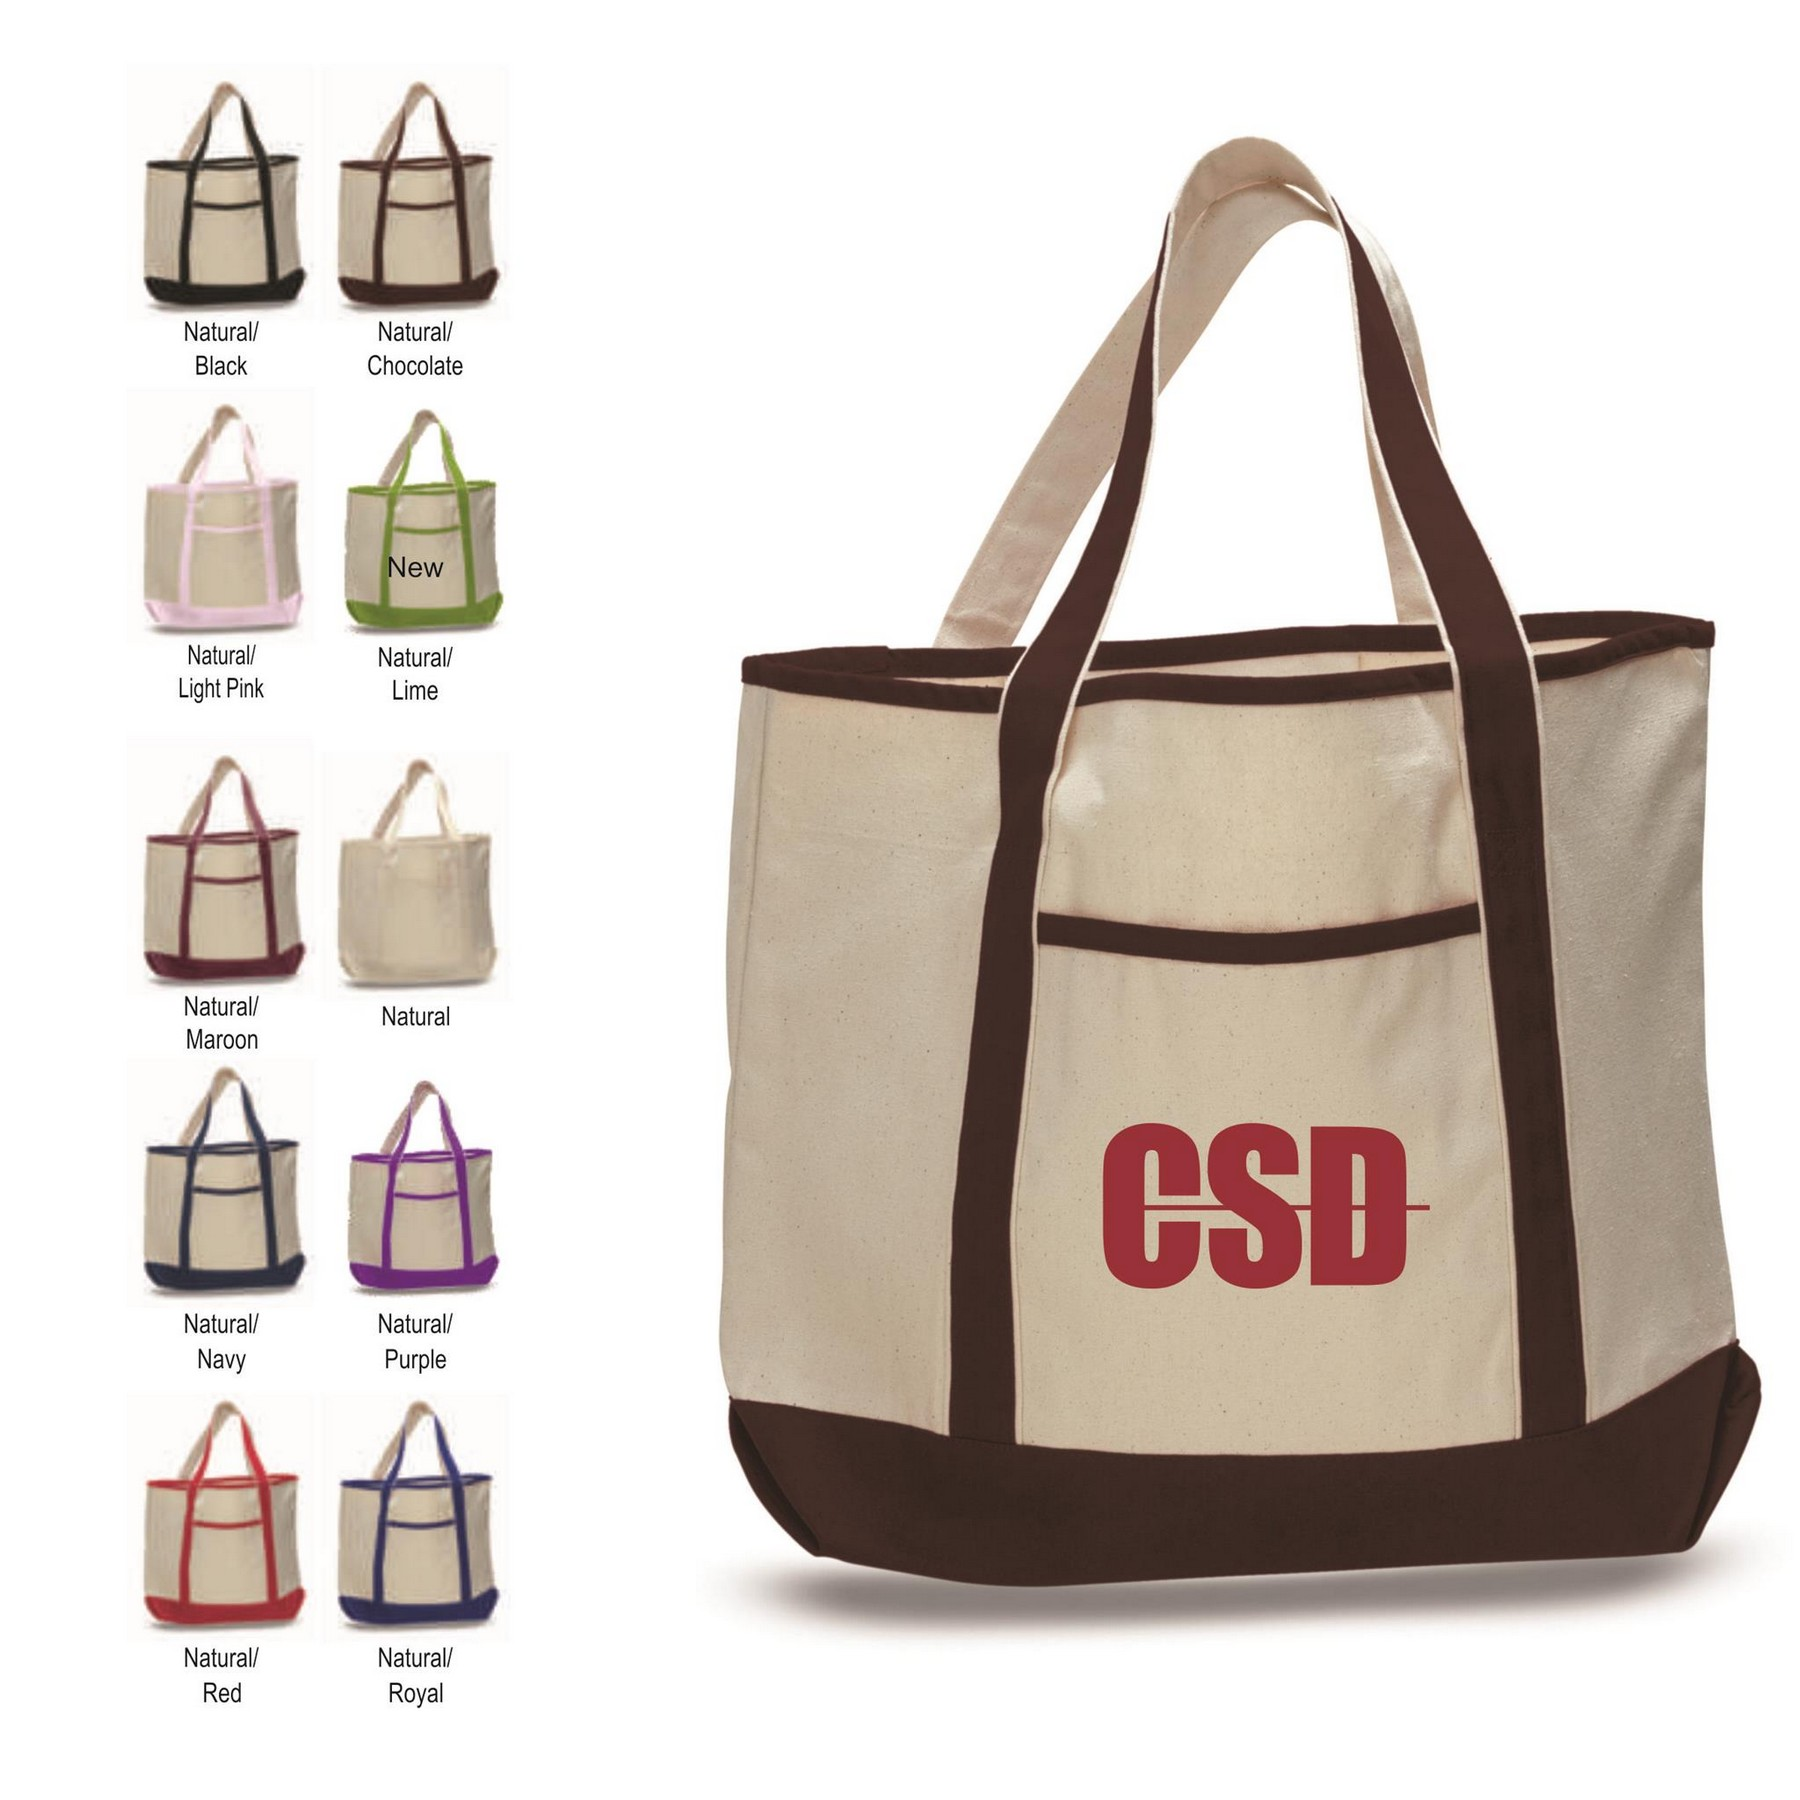 2019 Quick Seller Q-Tees Large Canvas Deluxe Cotton Tote Bag